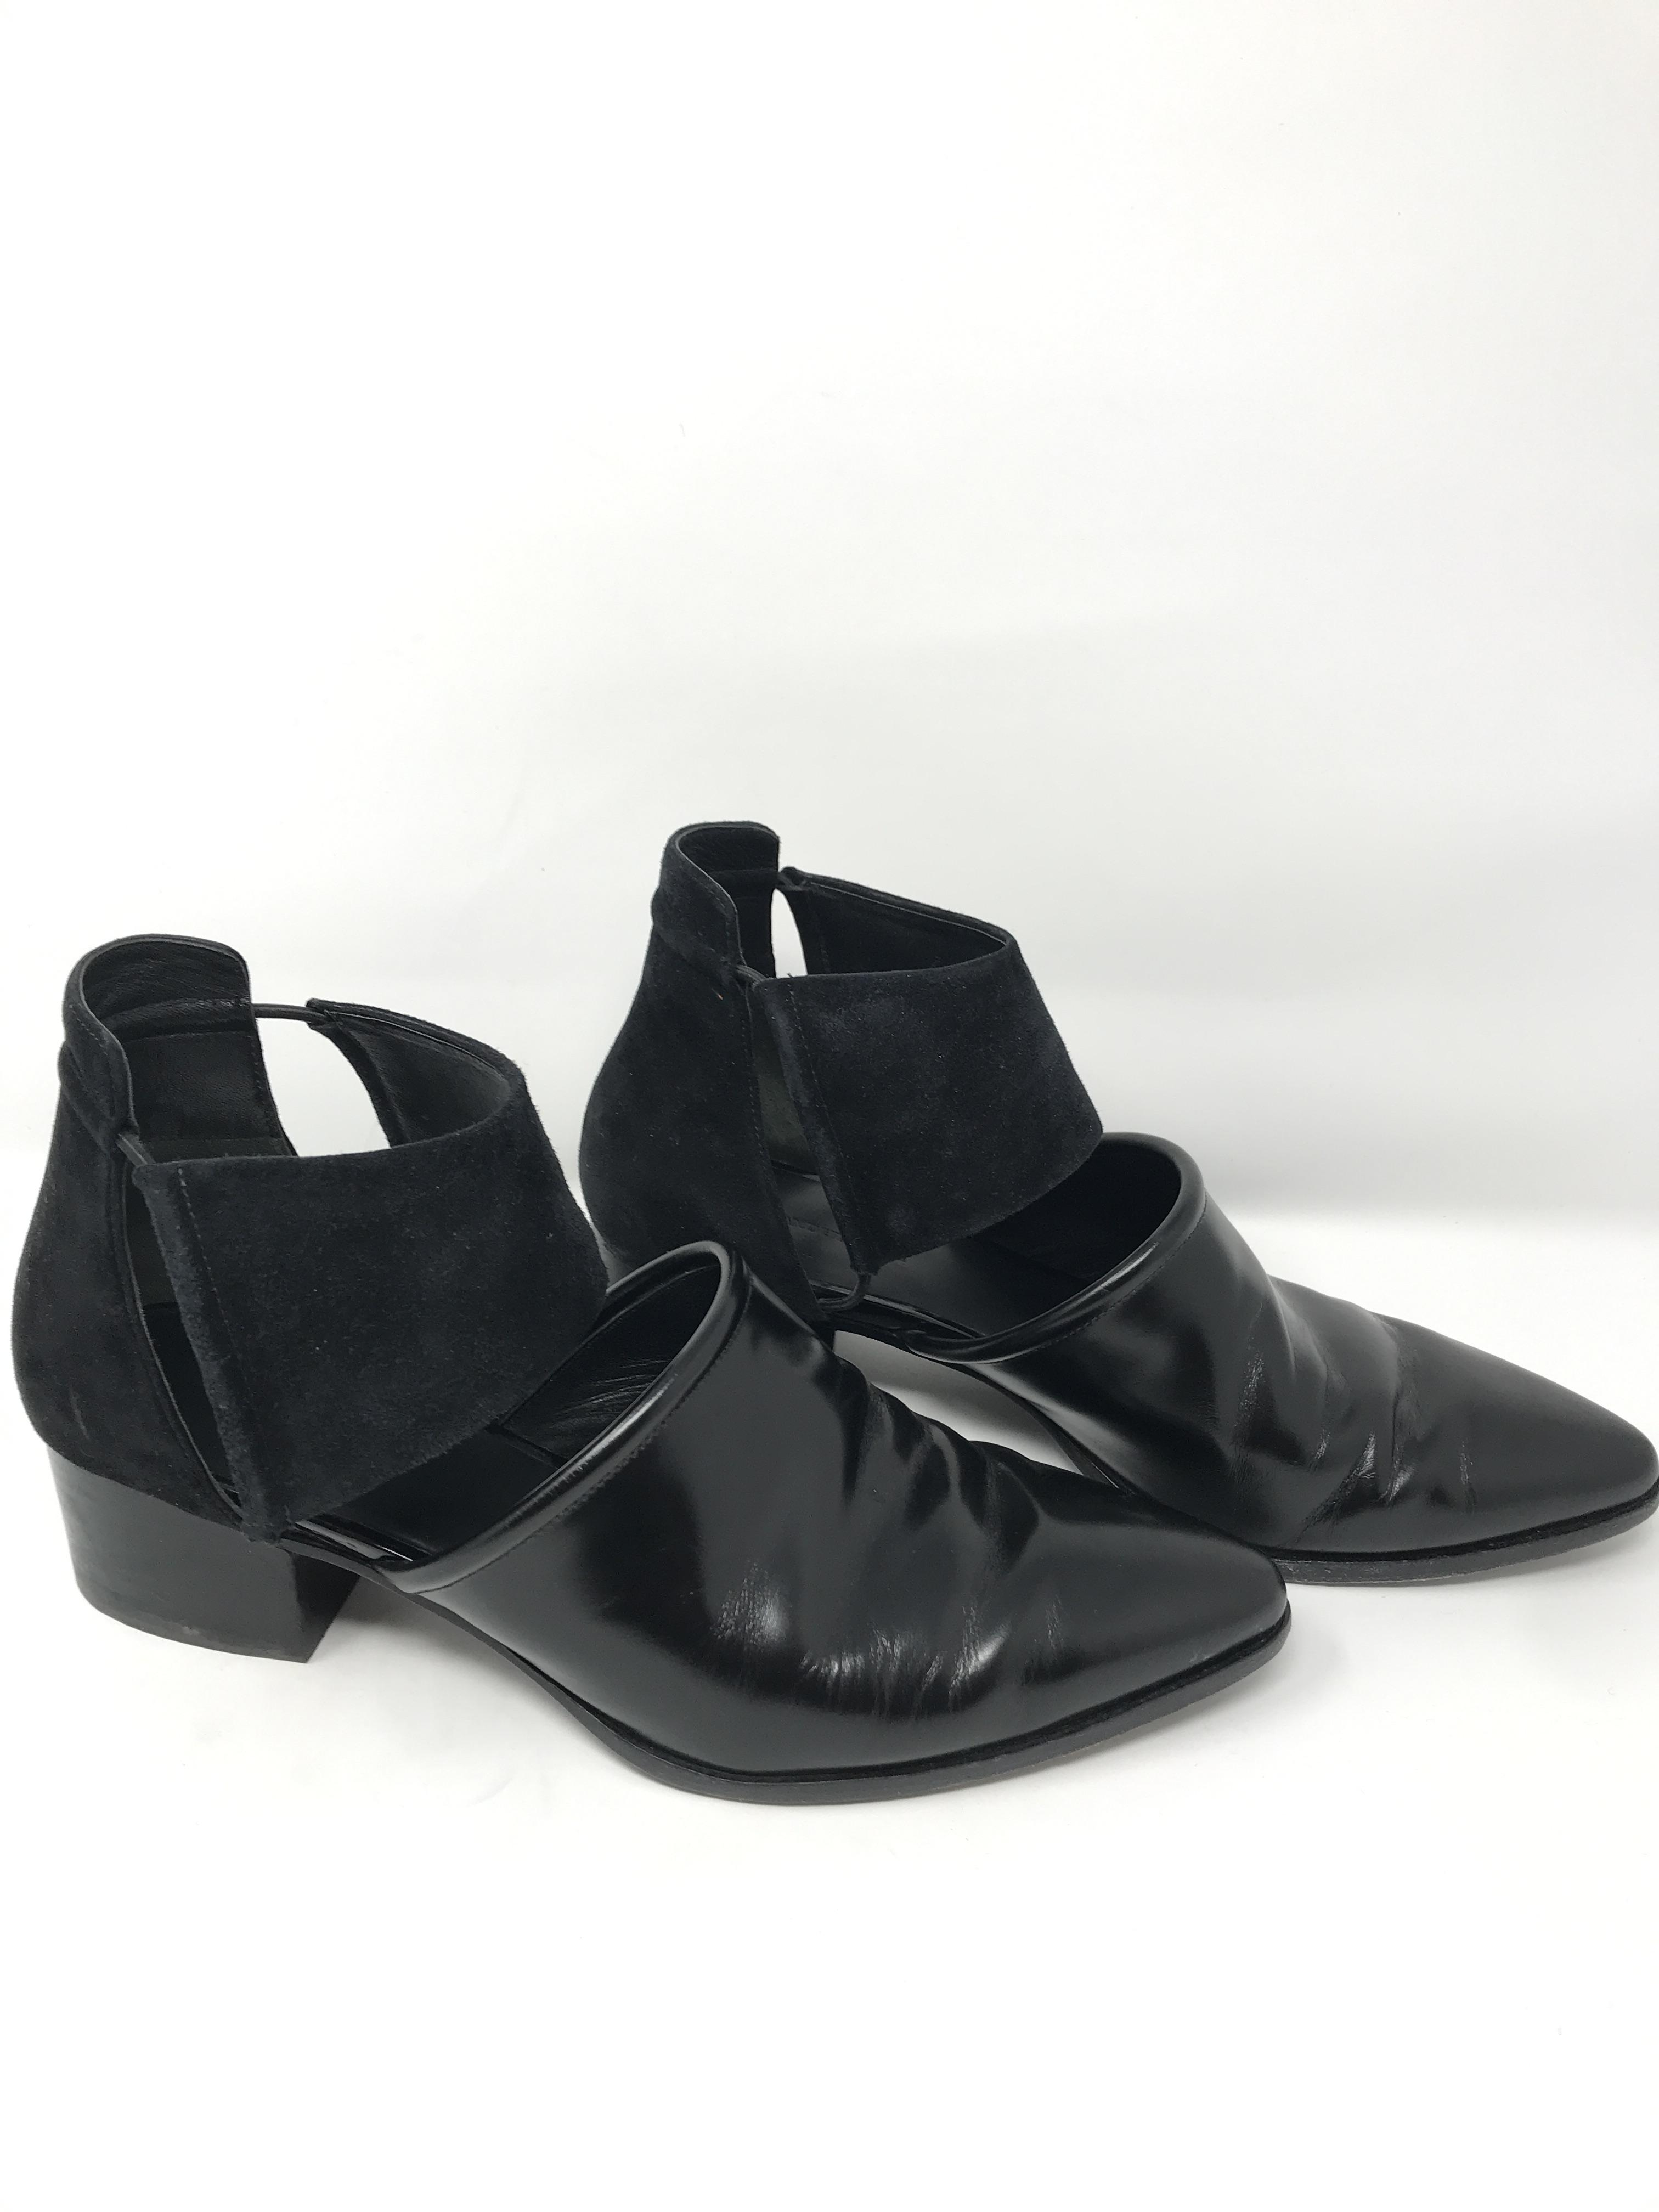 Alexander Shoes Price: $186.99